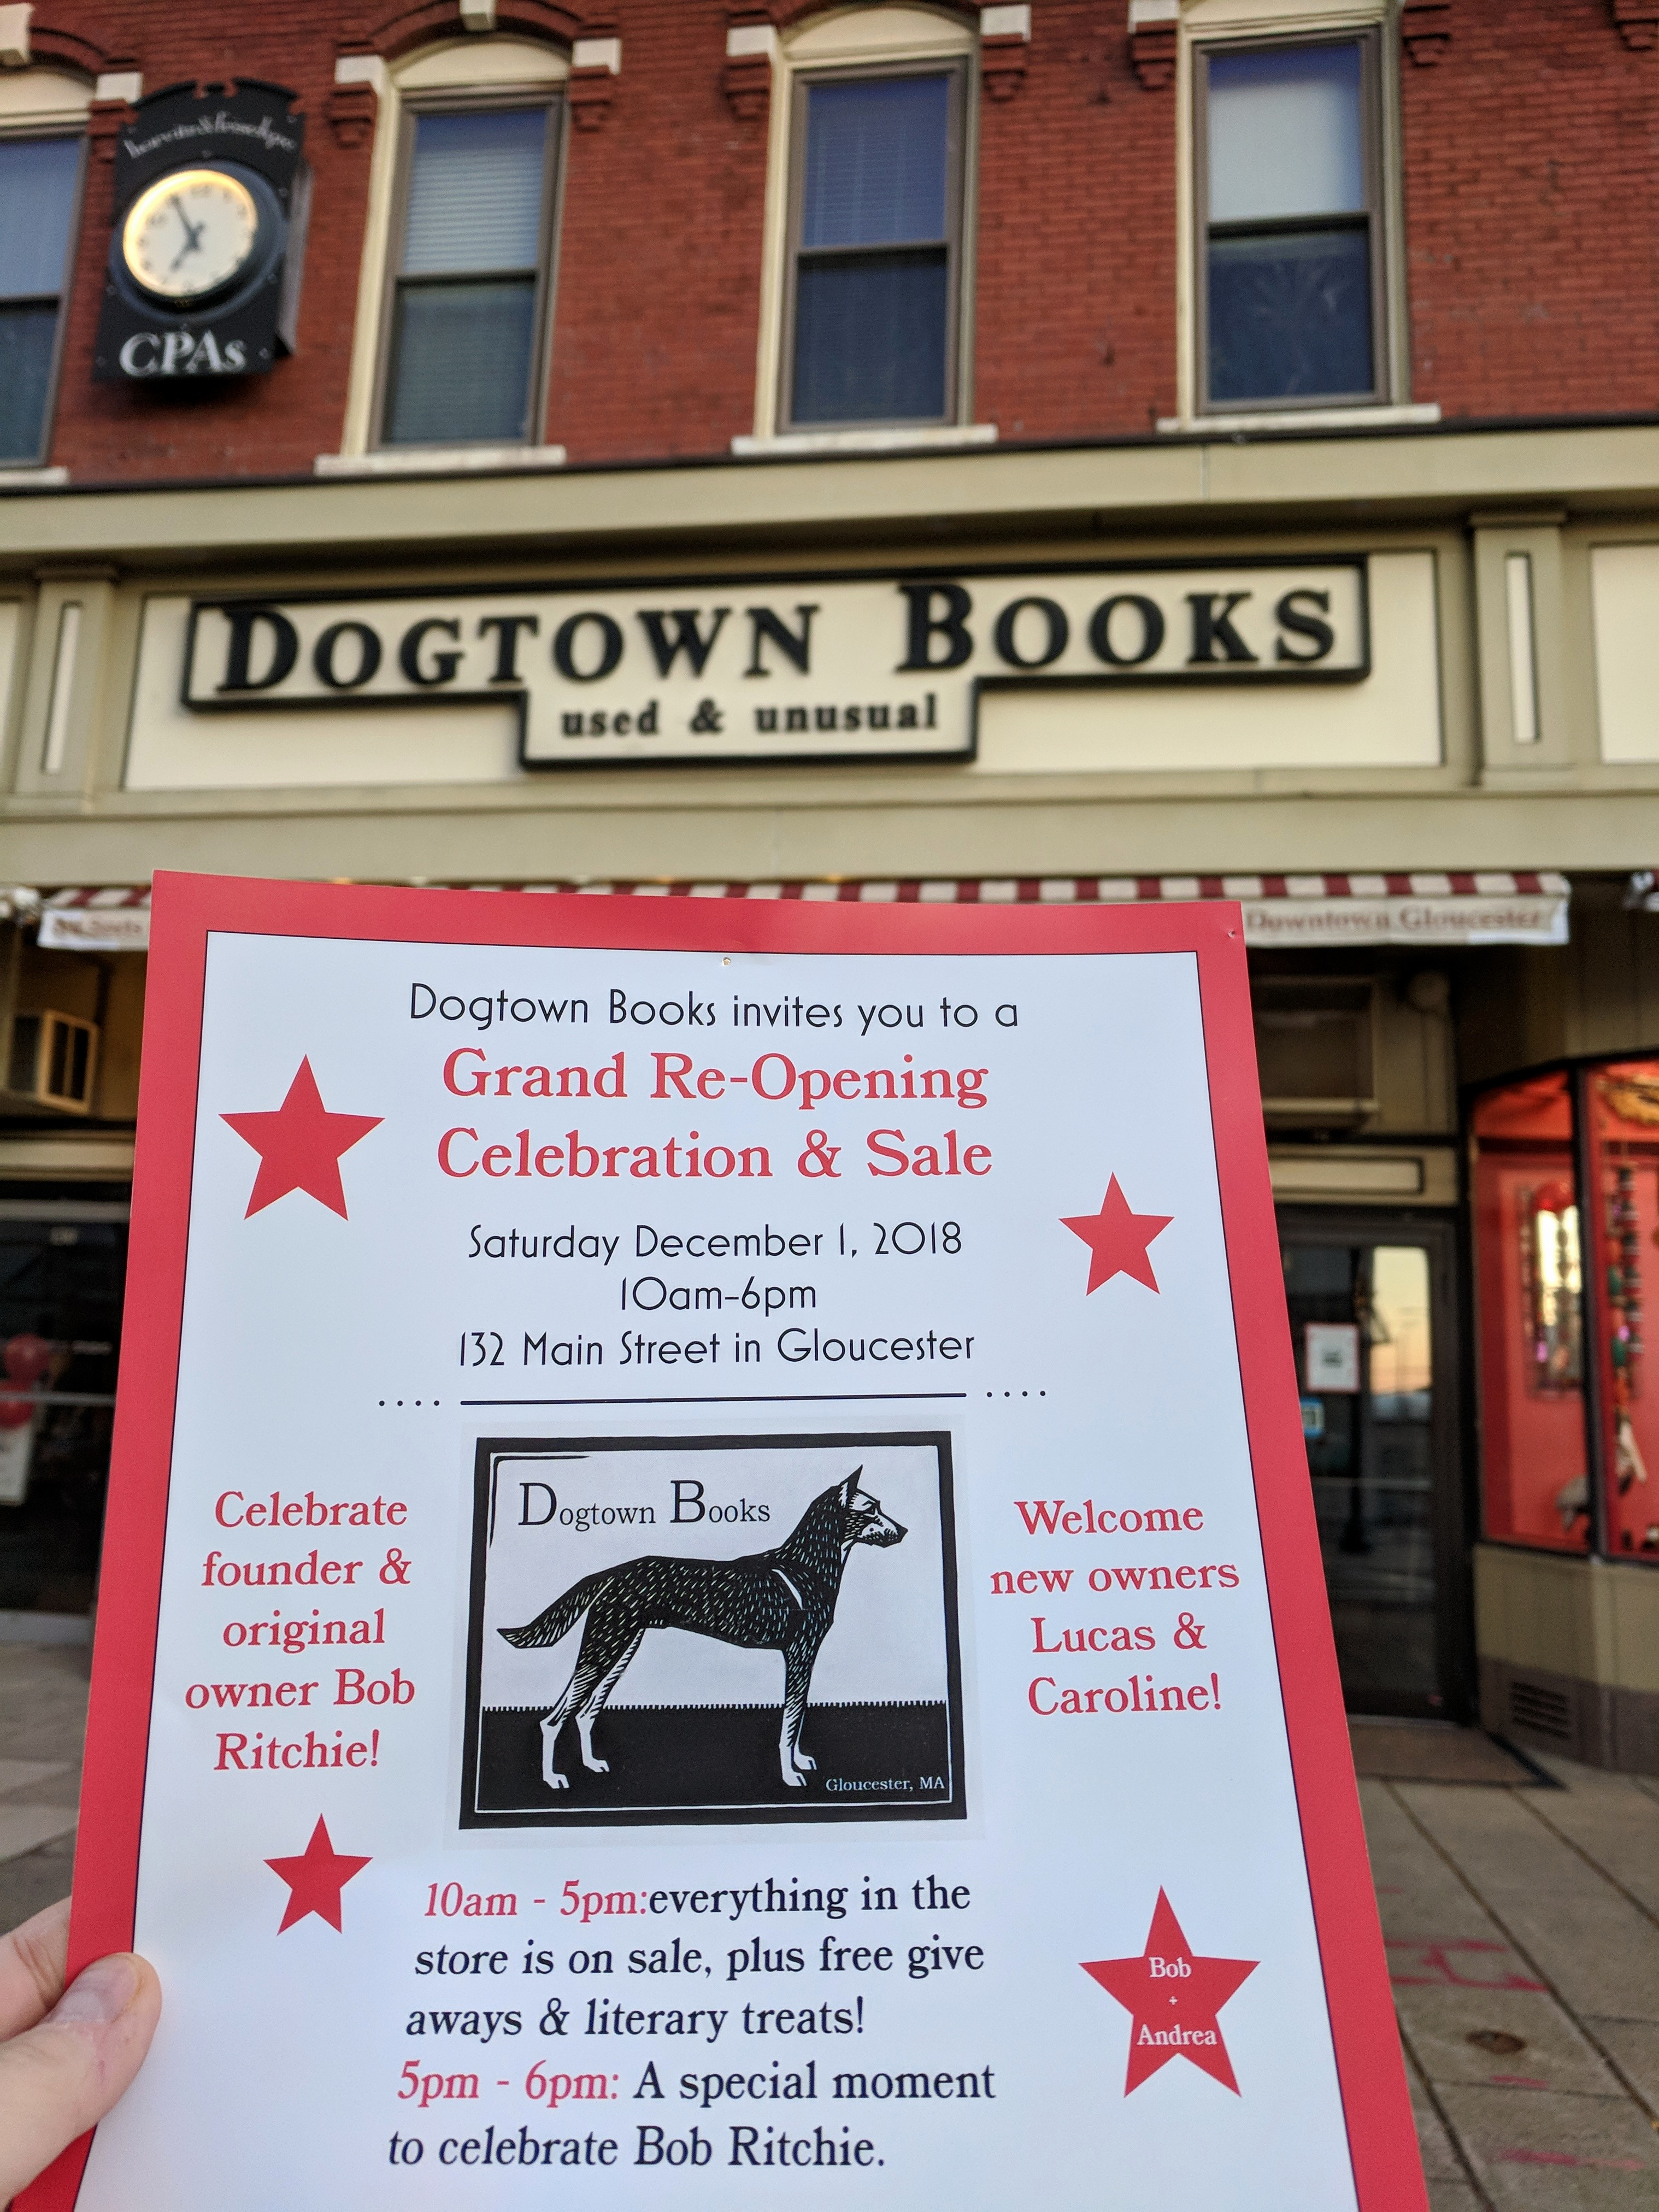 Dogtown Books 132 Main Street Gloucester MA_grand re-opening celebration and sale©c ryan  (3).jpg